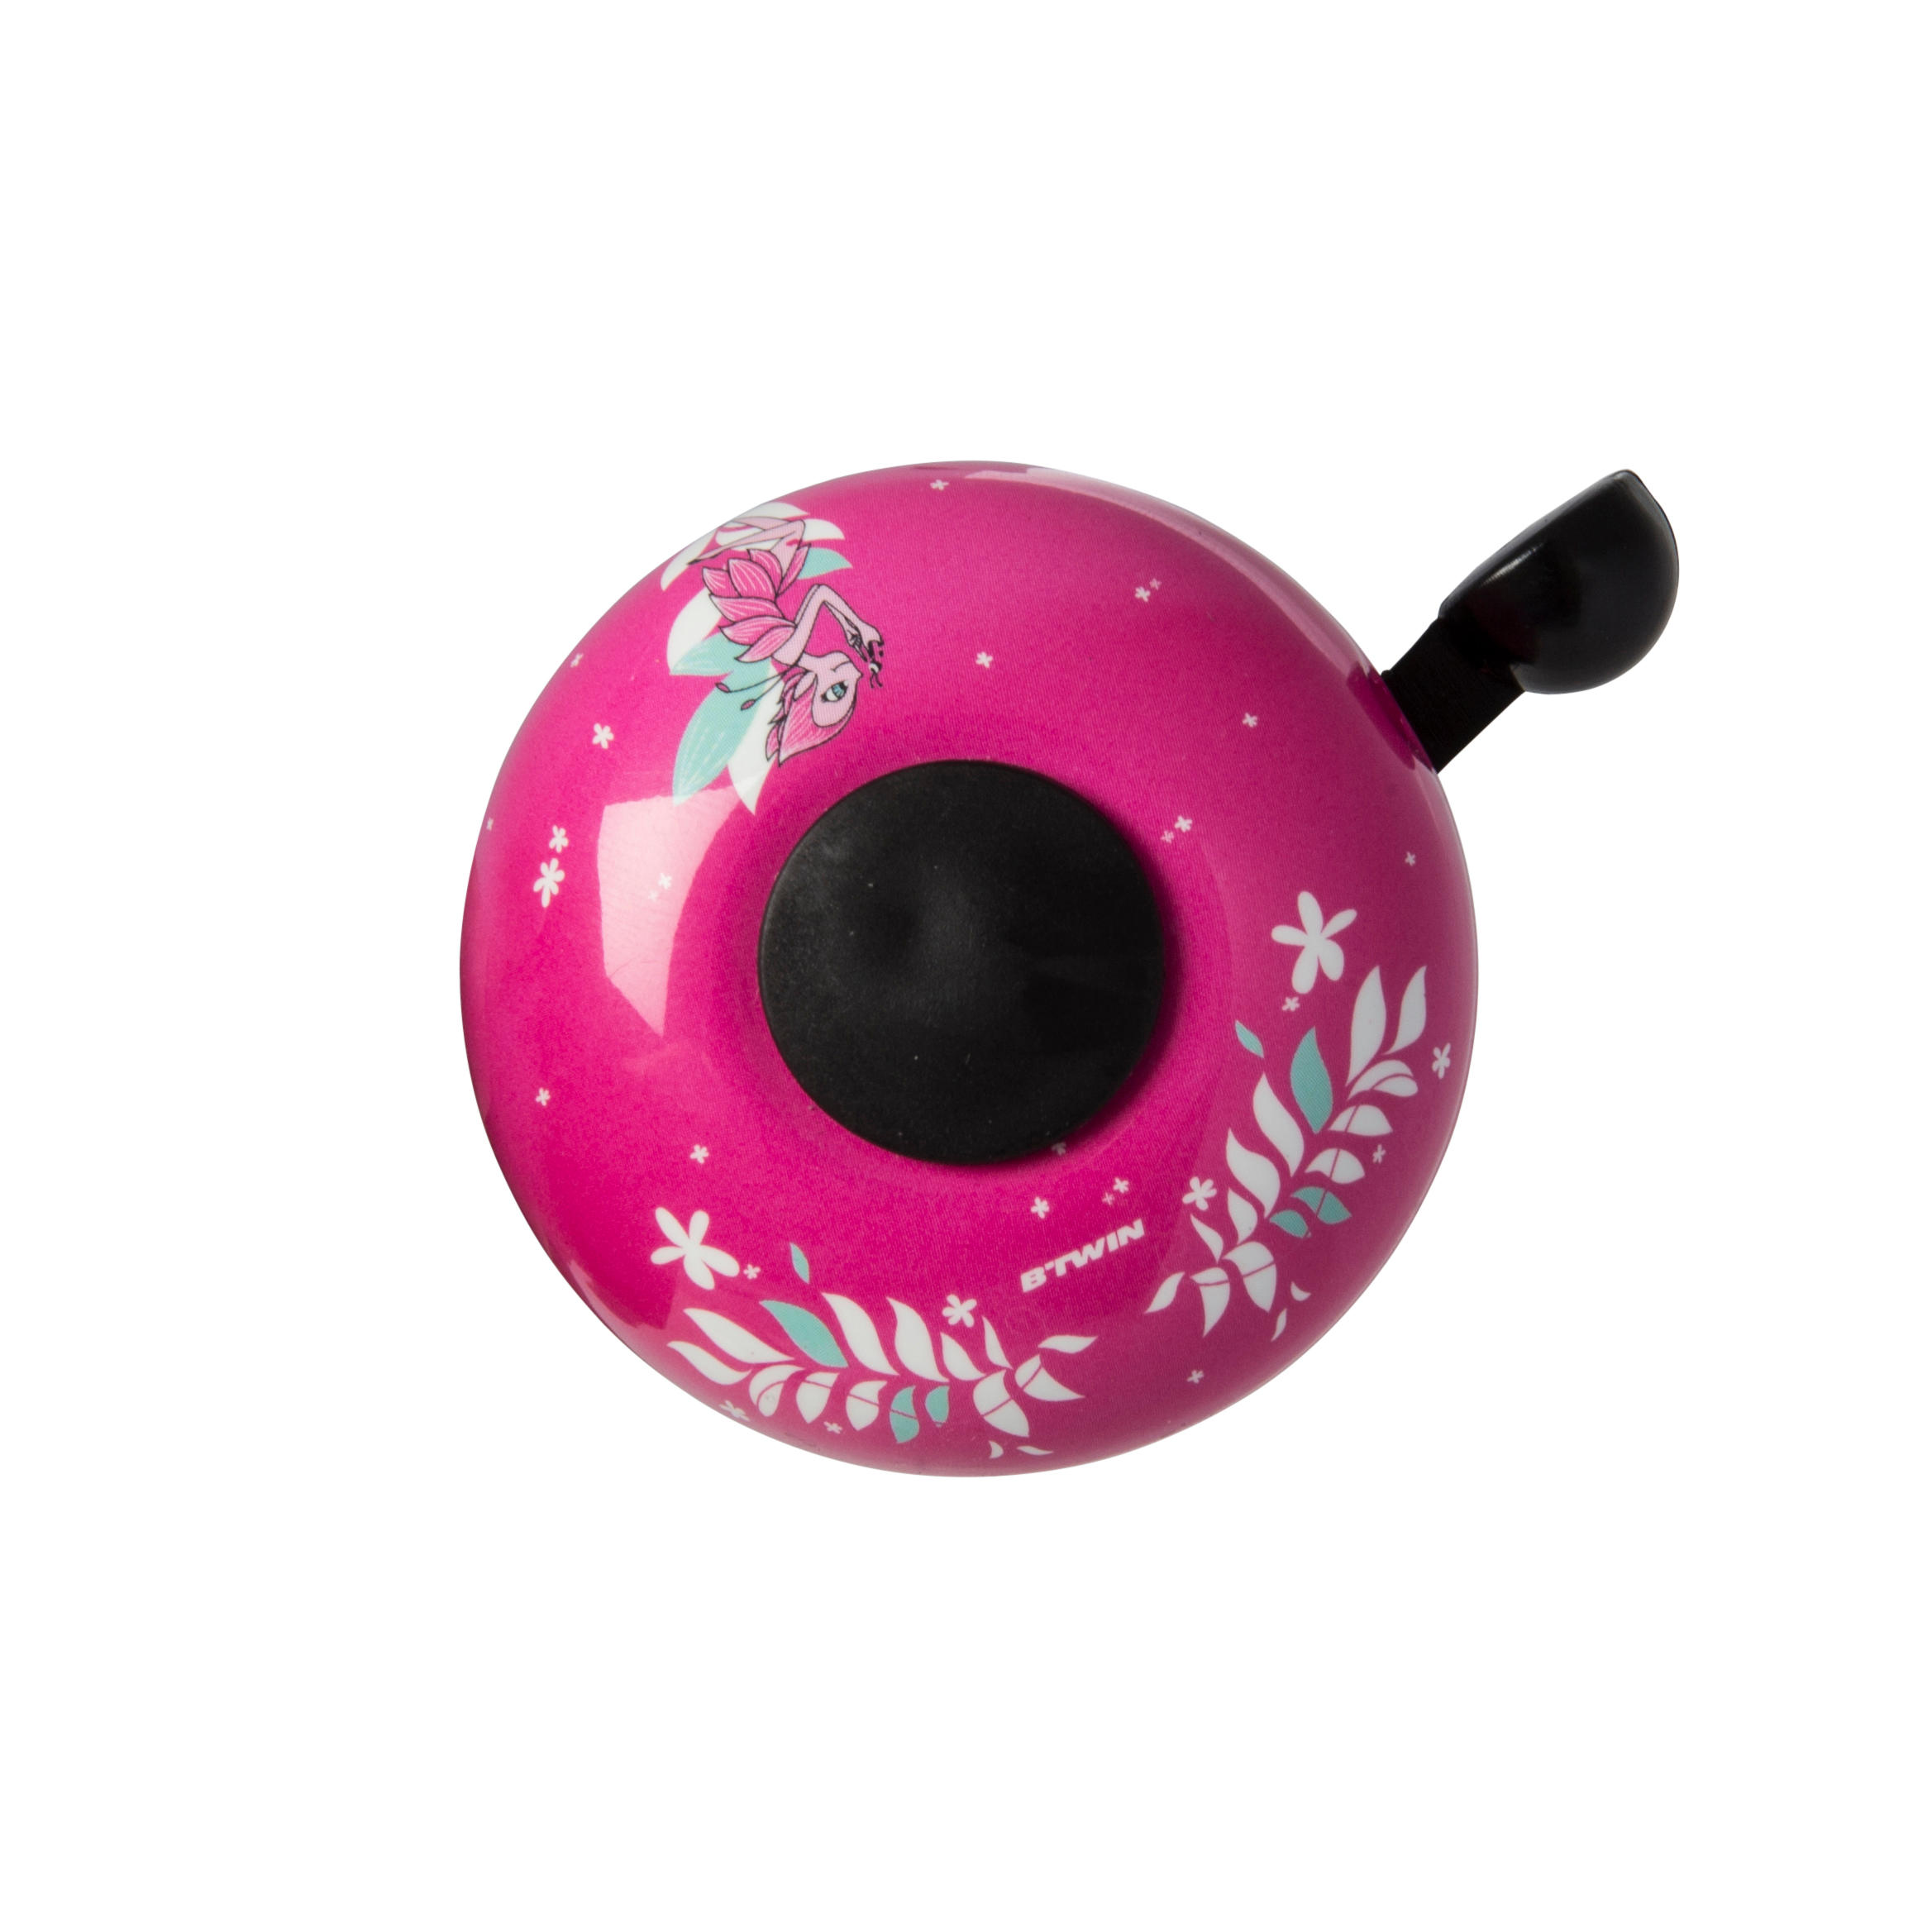 Mistigirl Children's Bike Bell - Pink